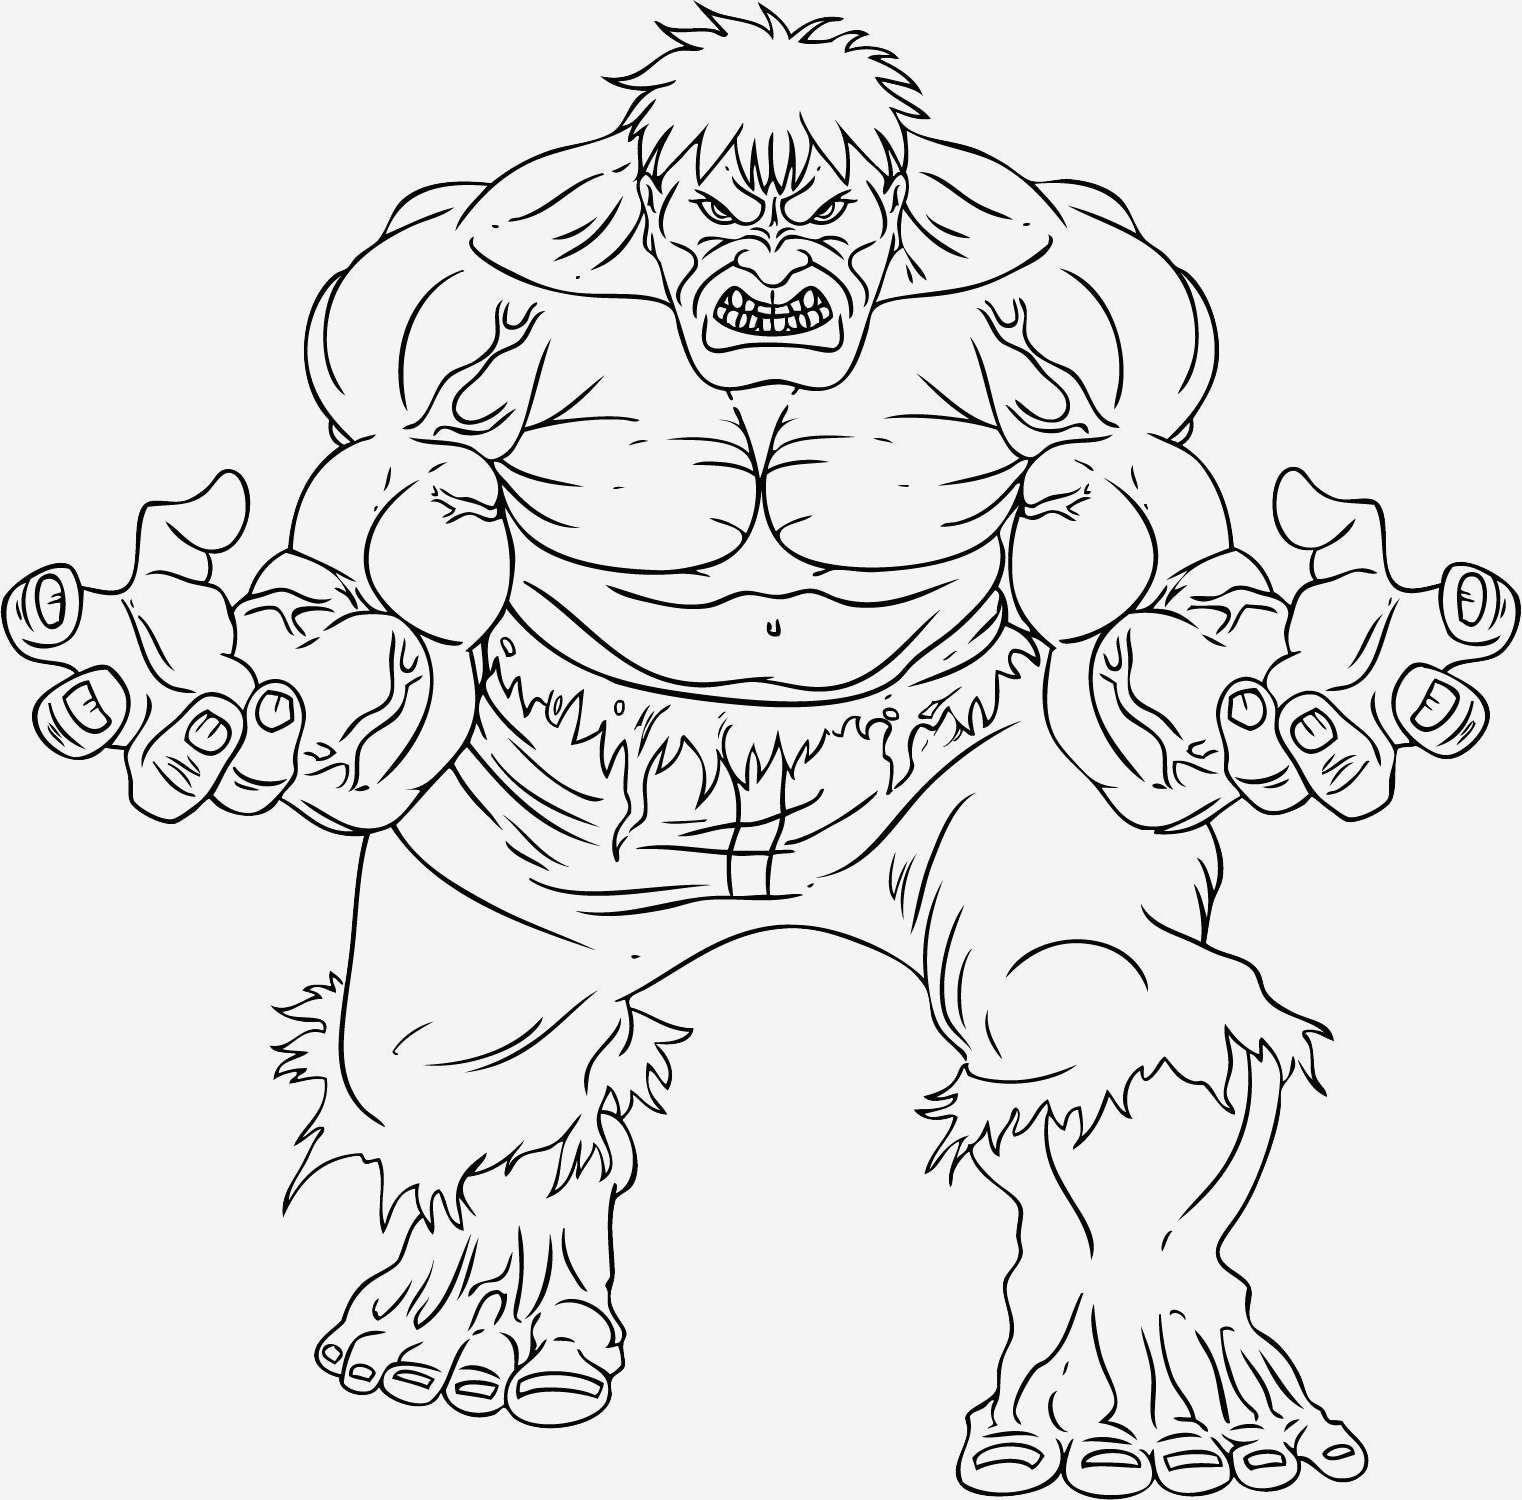 Coloriage Hulk Beautiful Hulk 26 Superheroes – Printable Coloring Pages Of Coloriage Hulk